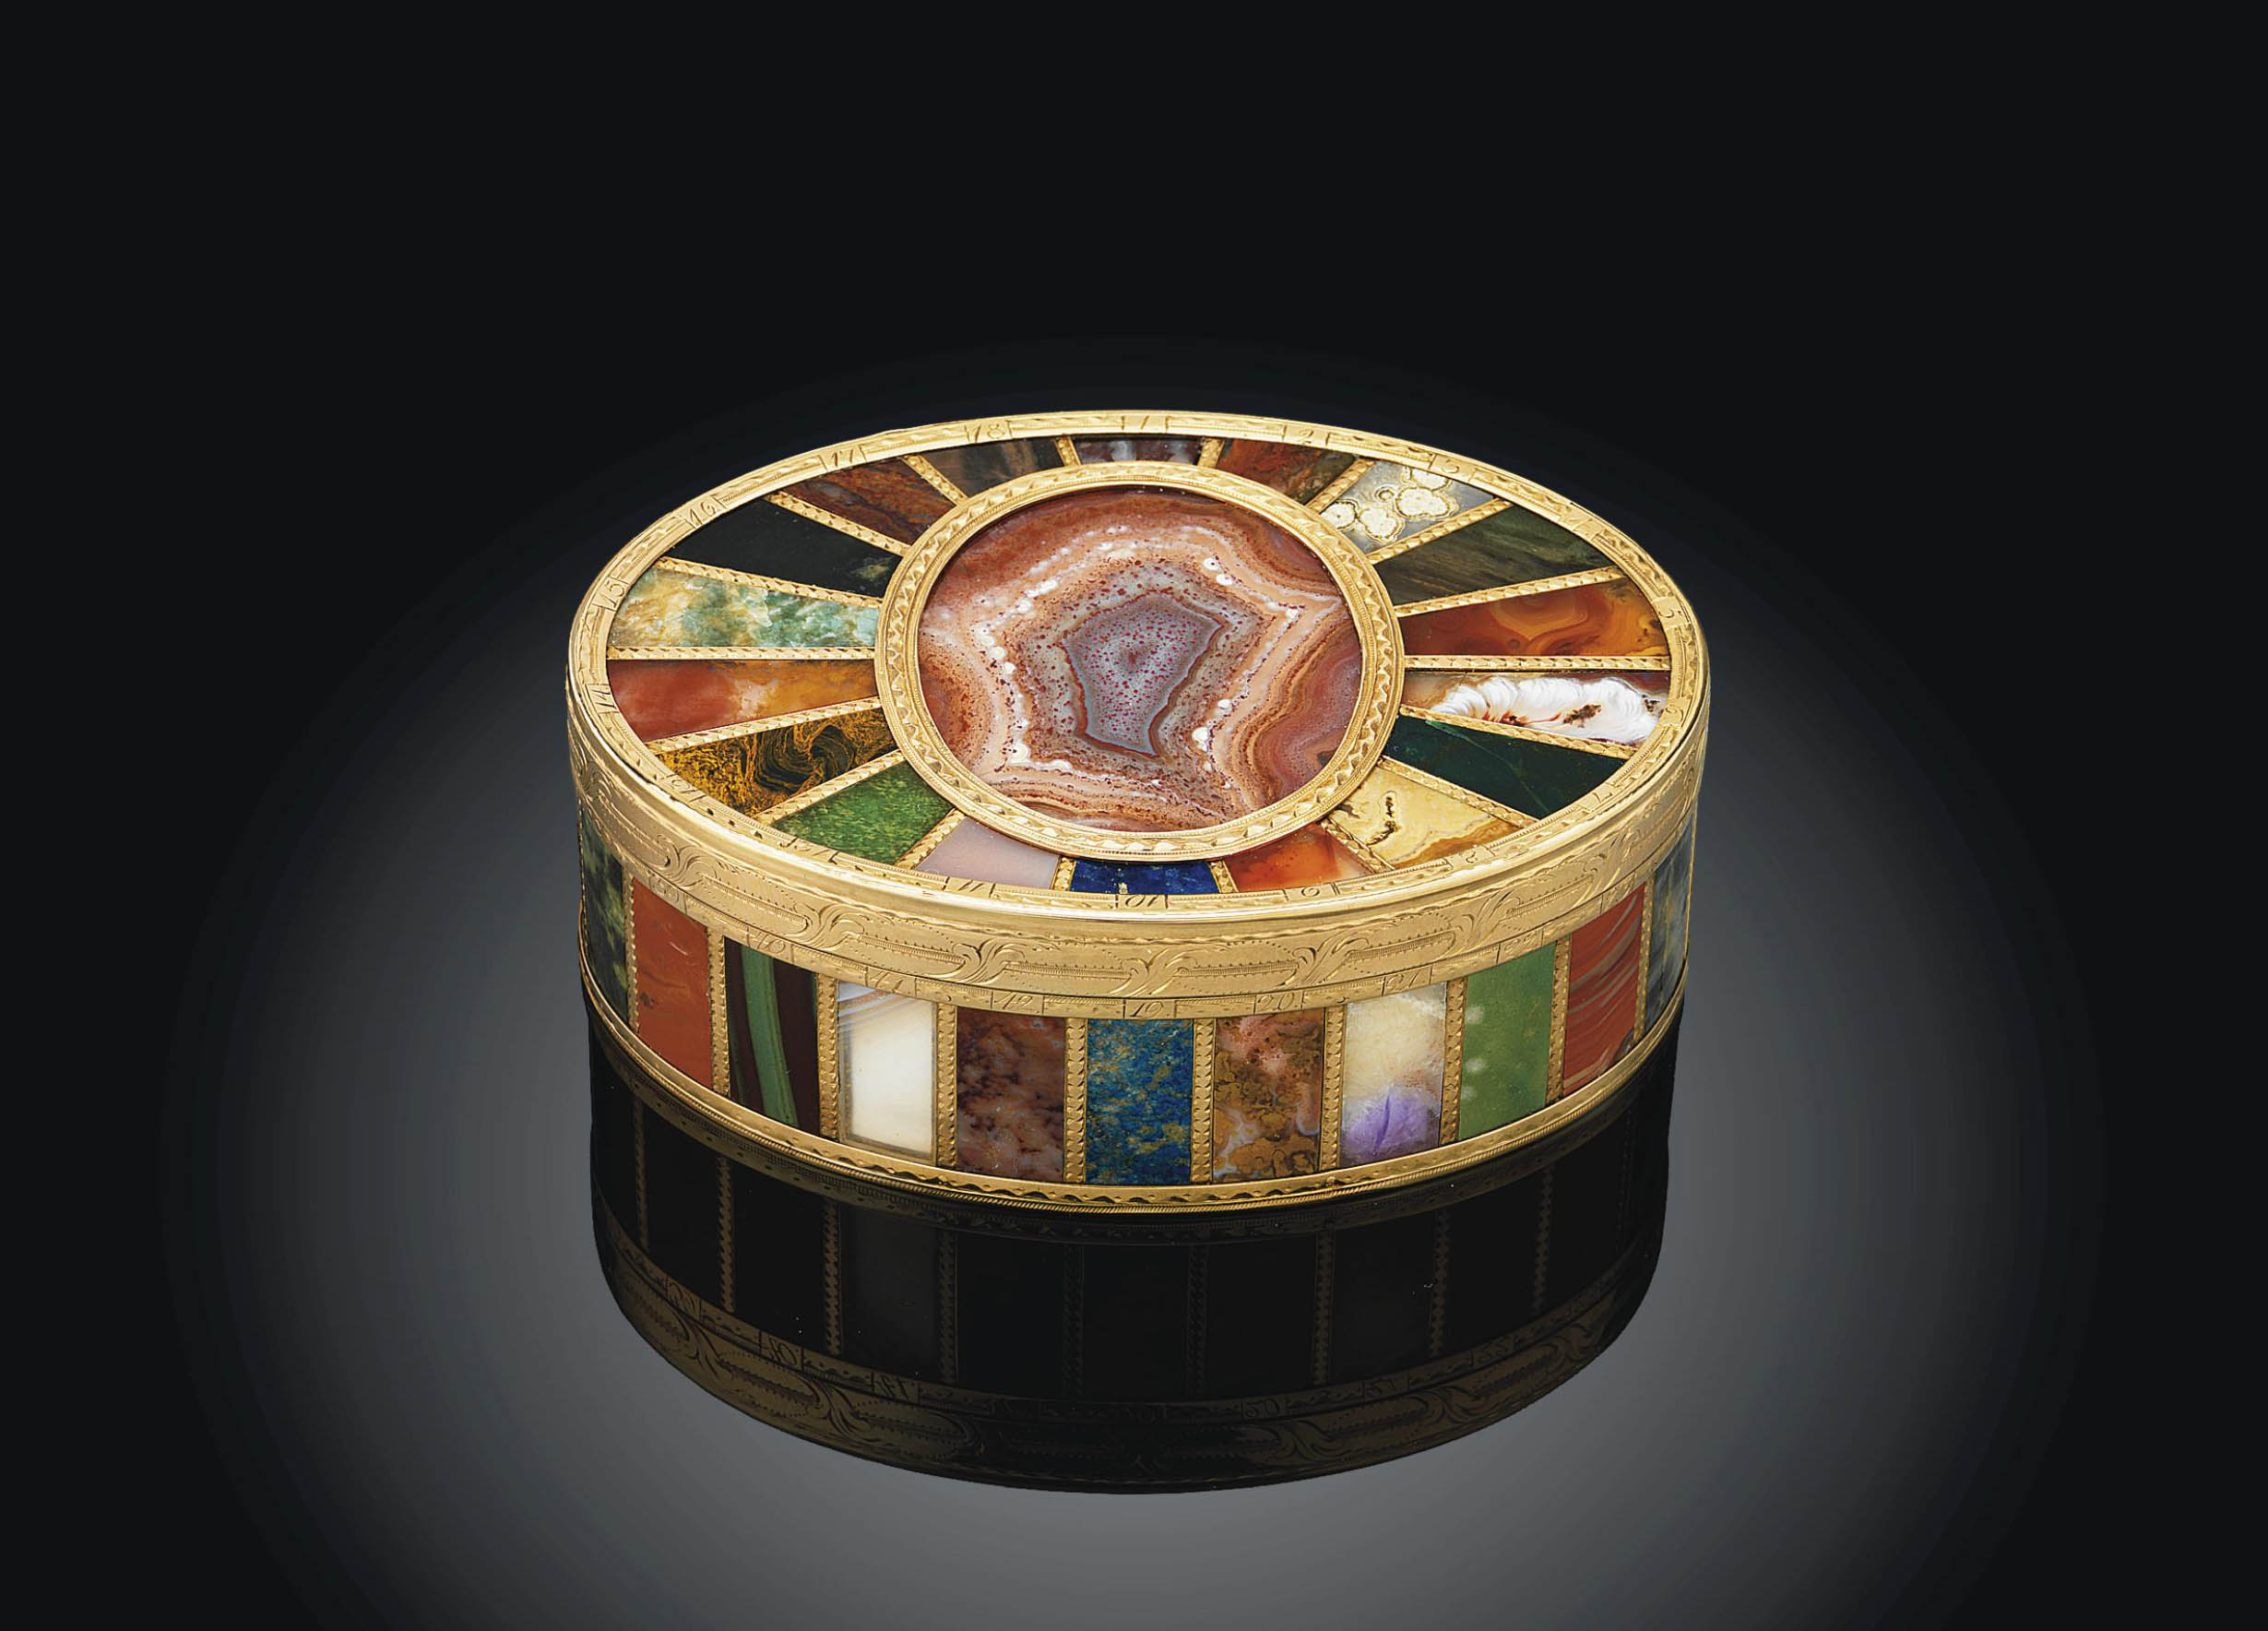 AN IMPORTANT SAXON GOLD-MOUNTED 'STEIN-CABINET' SNUFF-BOX